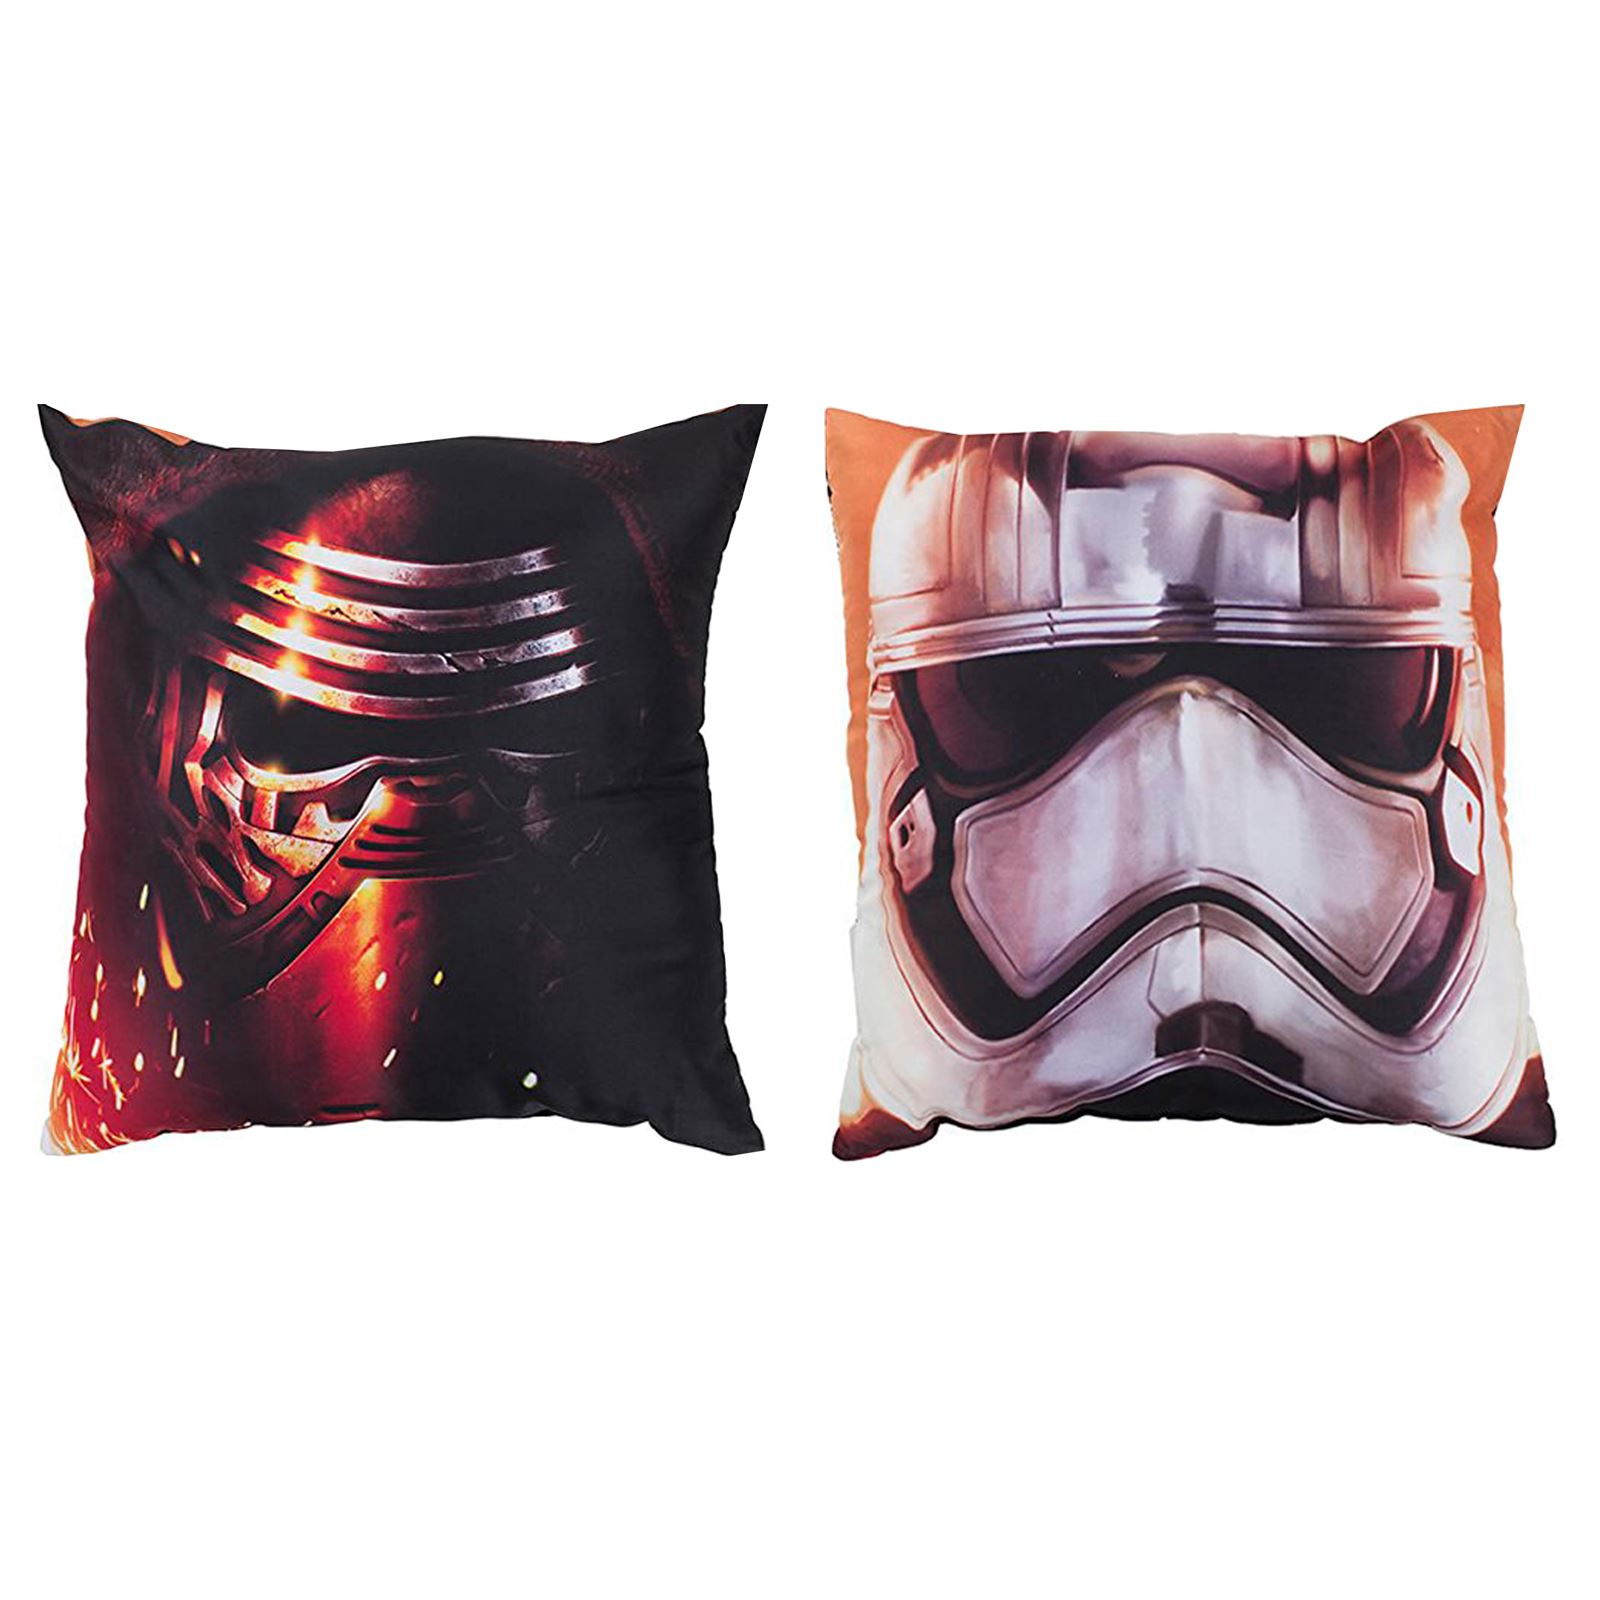 star wars episode vii die kraft erwacht kissen kylo ren. Black Bedroom Furniture Sets. Home Design Ideas